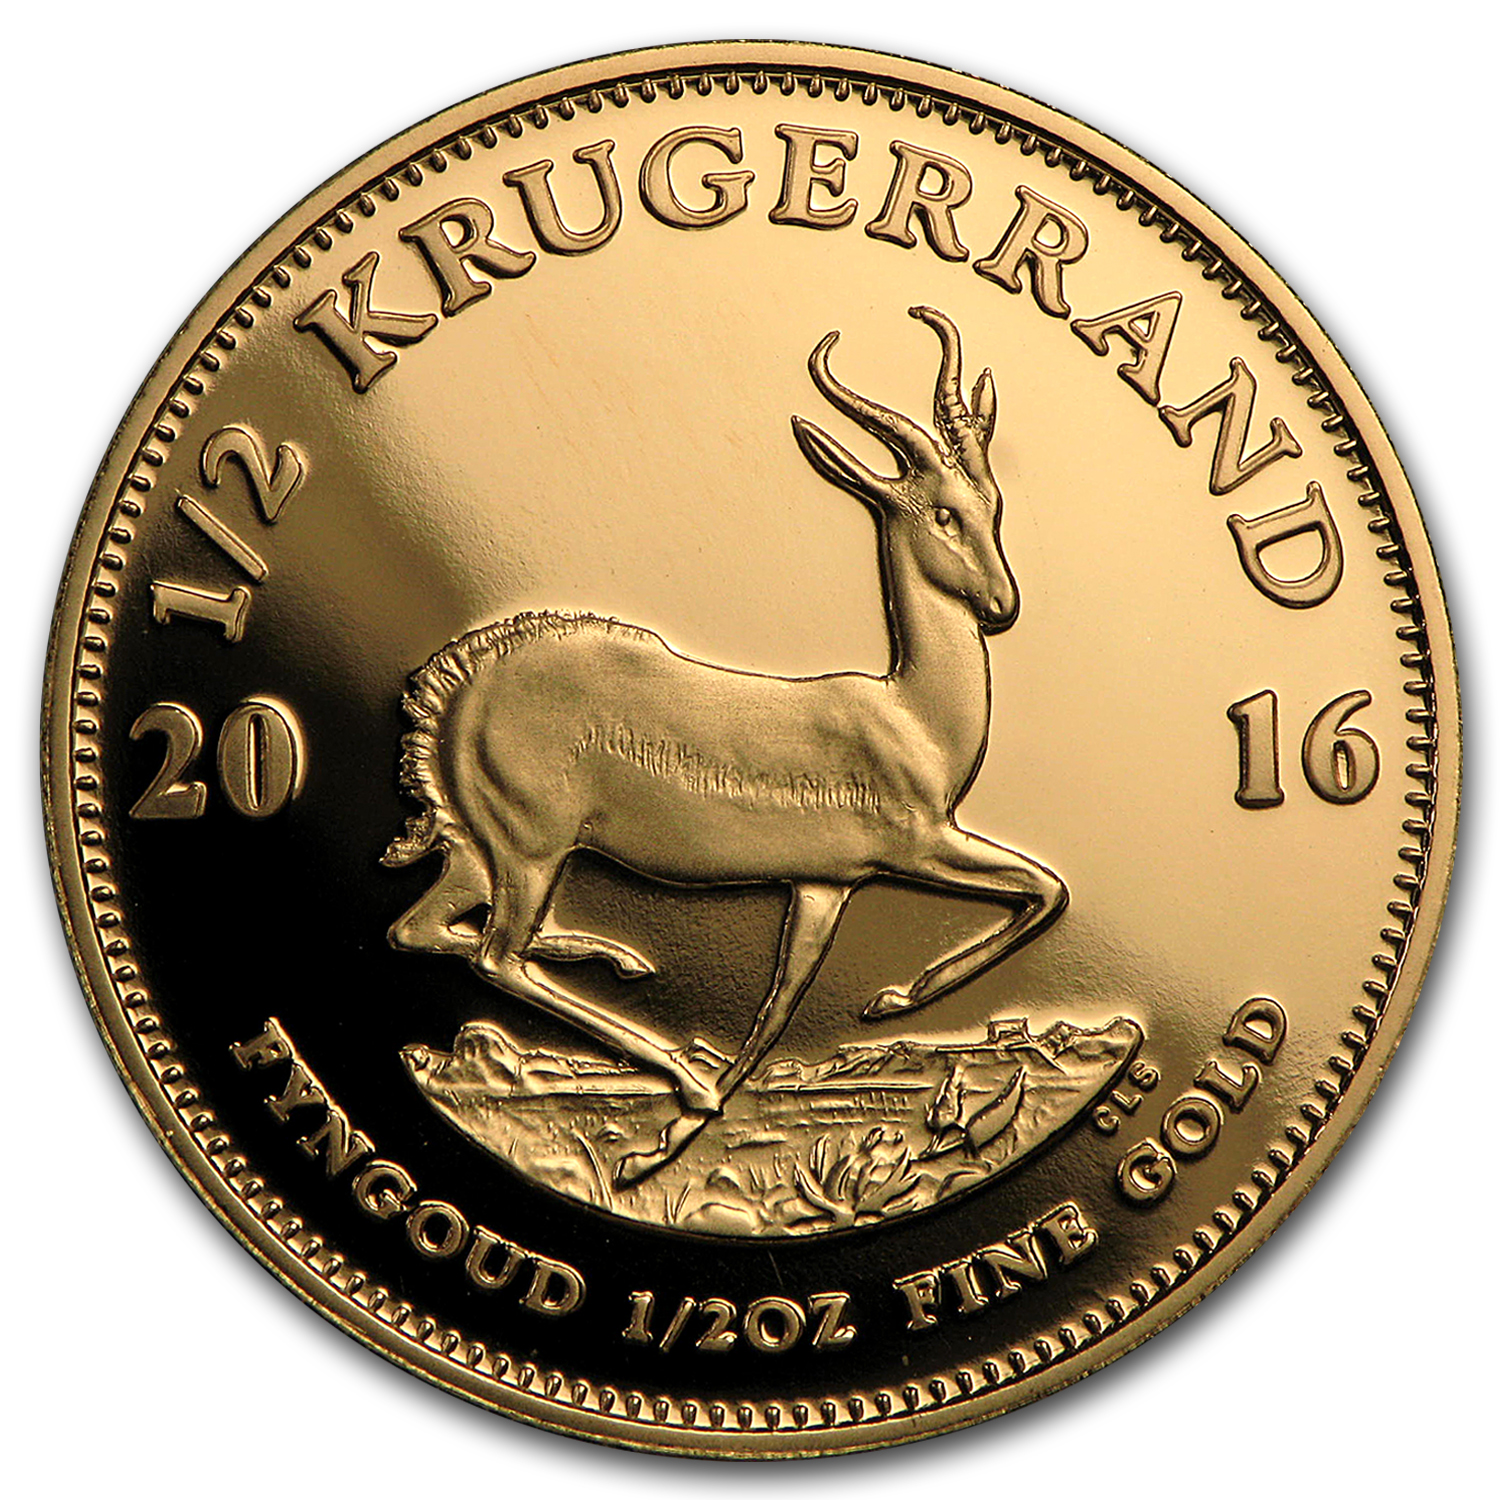 2016 South Africa 1/2 oz Proof Gold Krugerrand